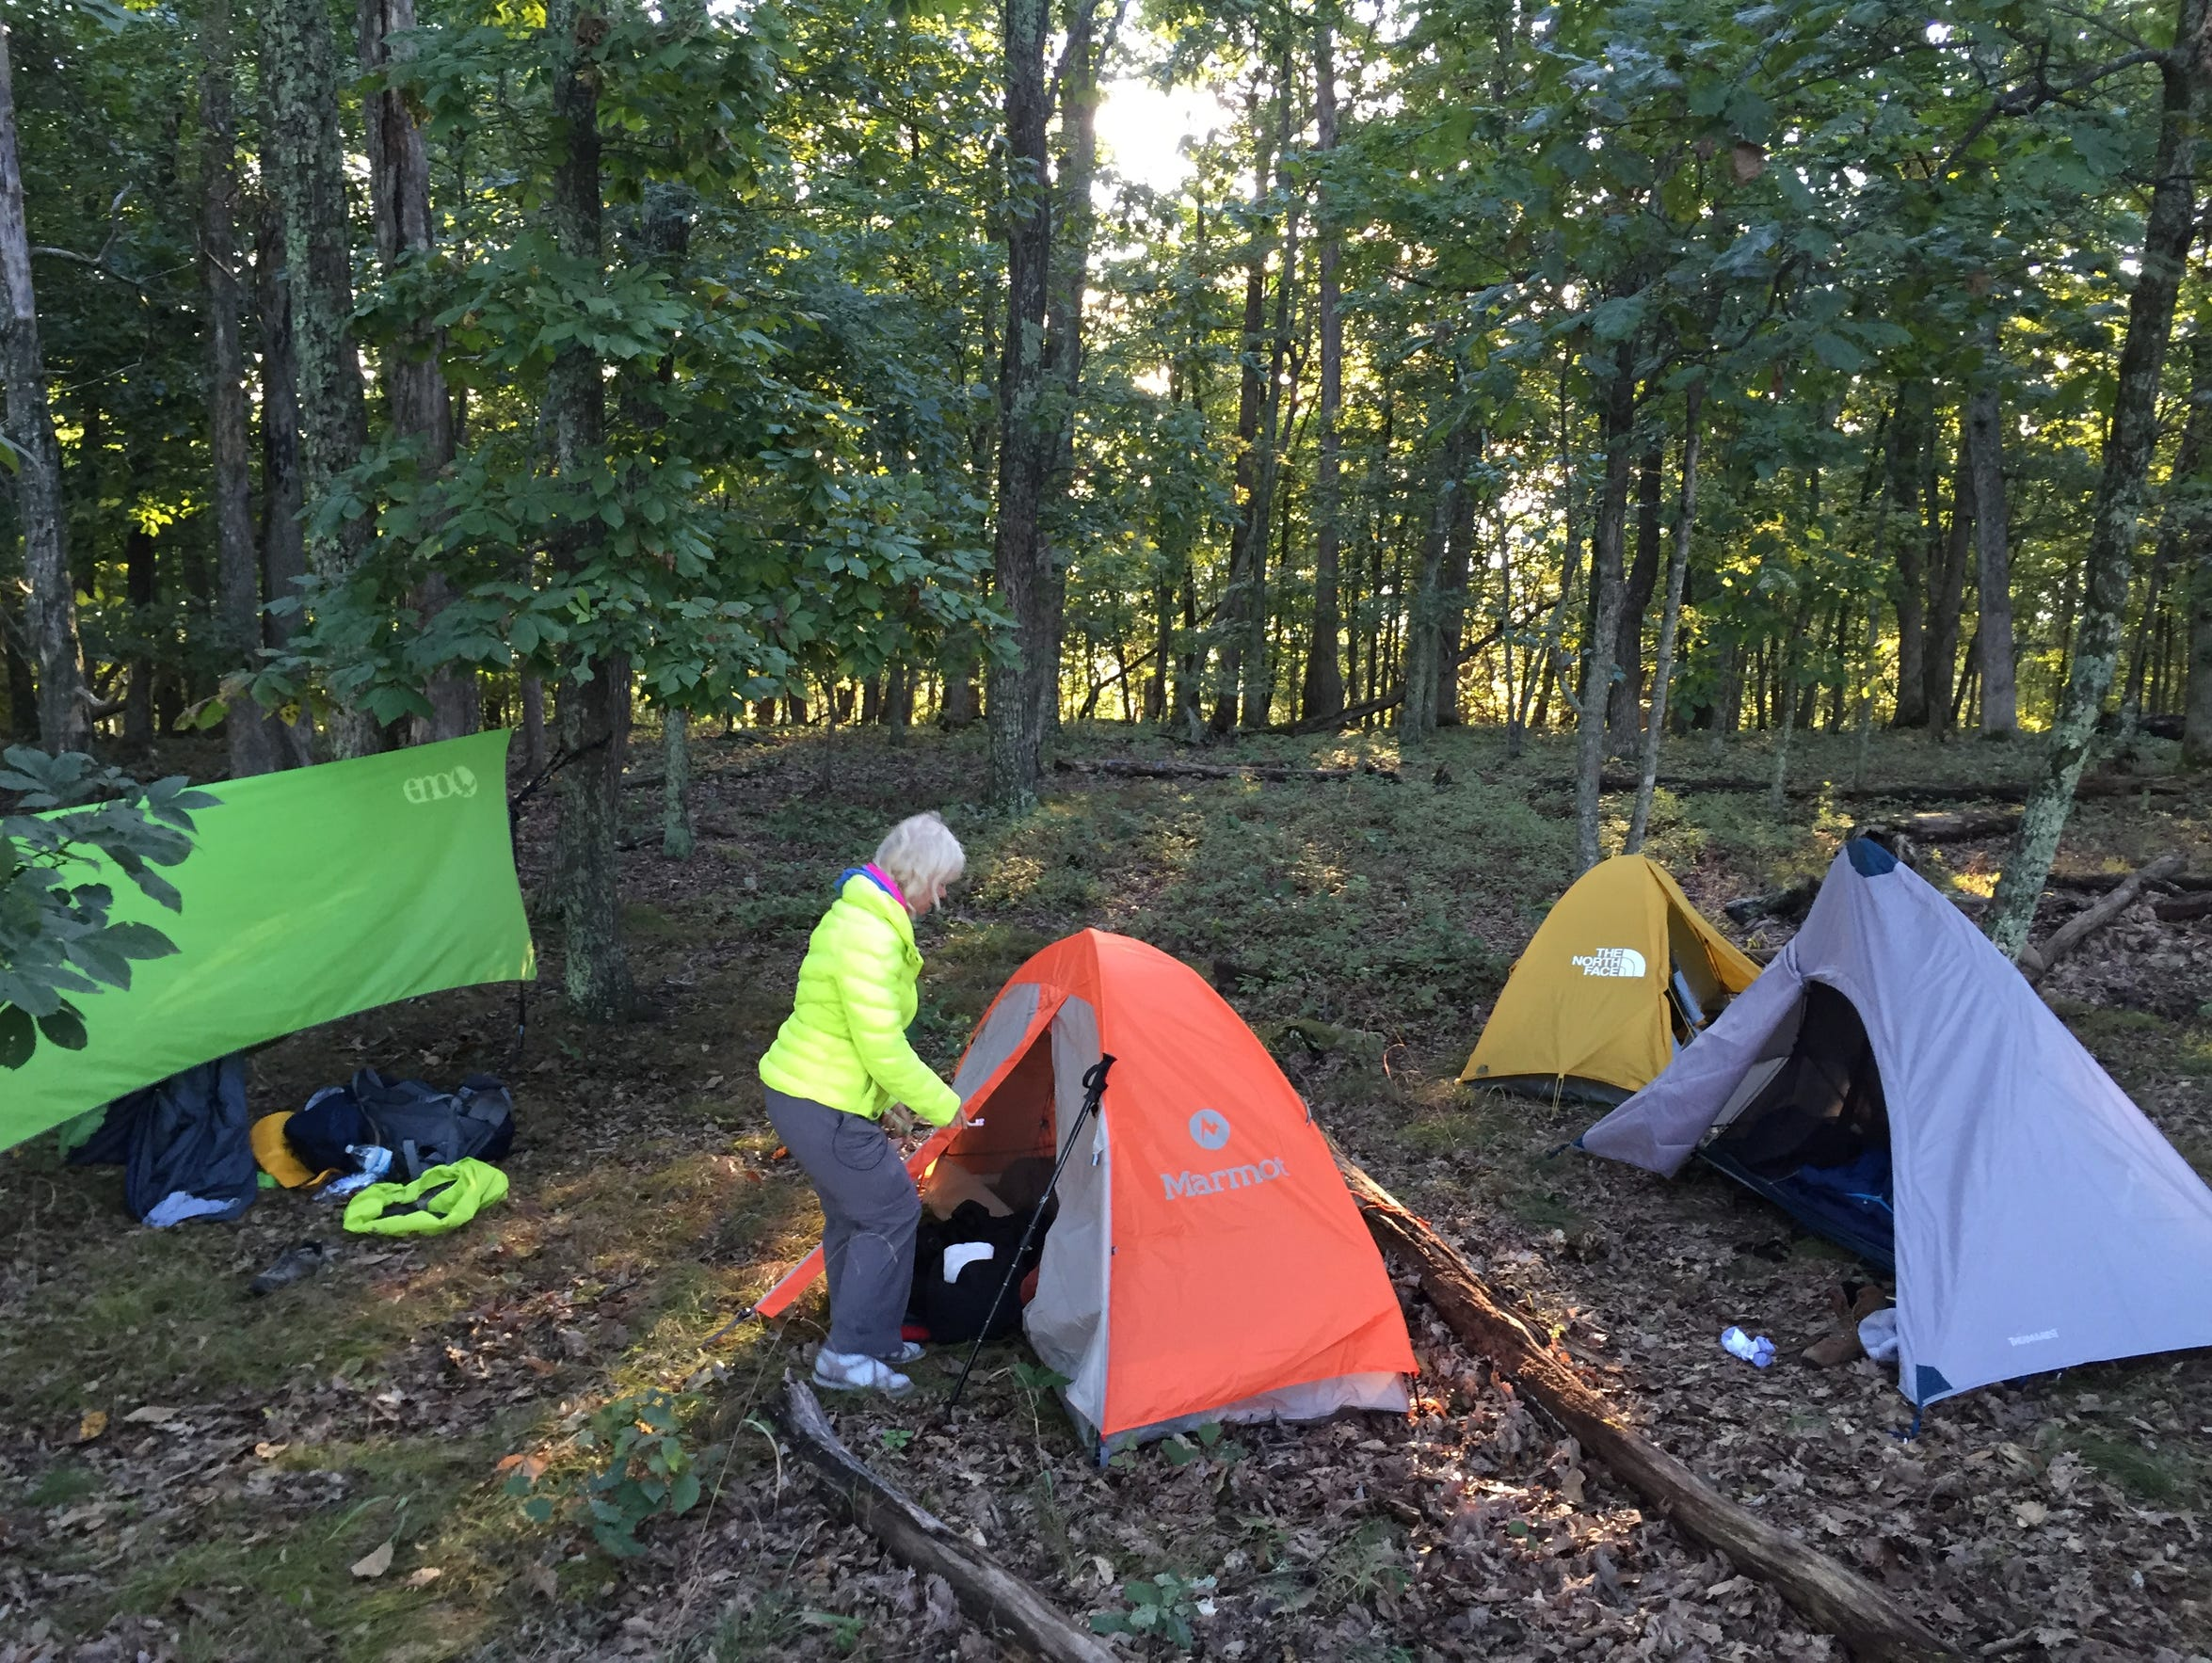 We pitched tents and a hammock in the woods after learning